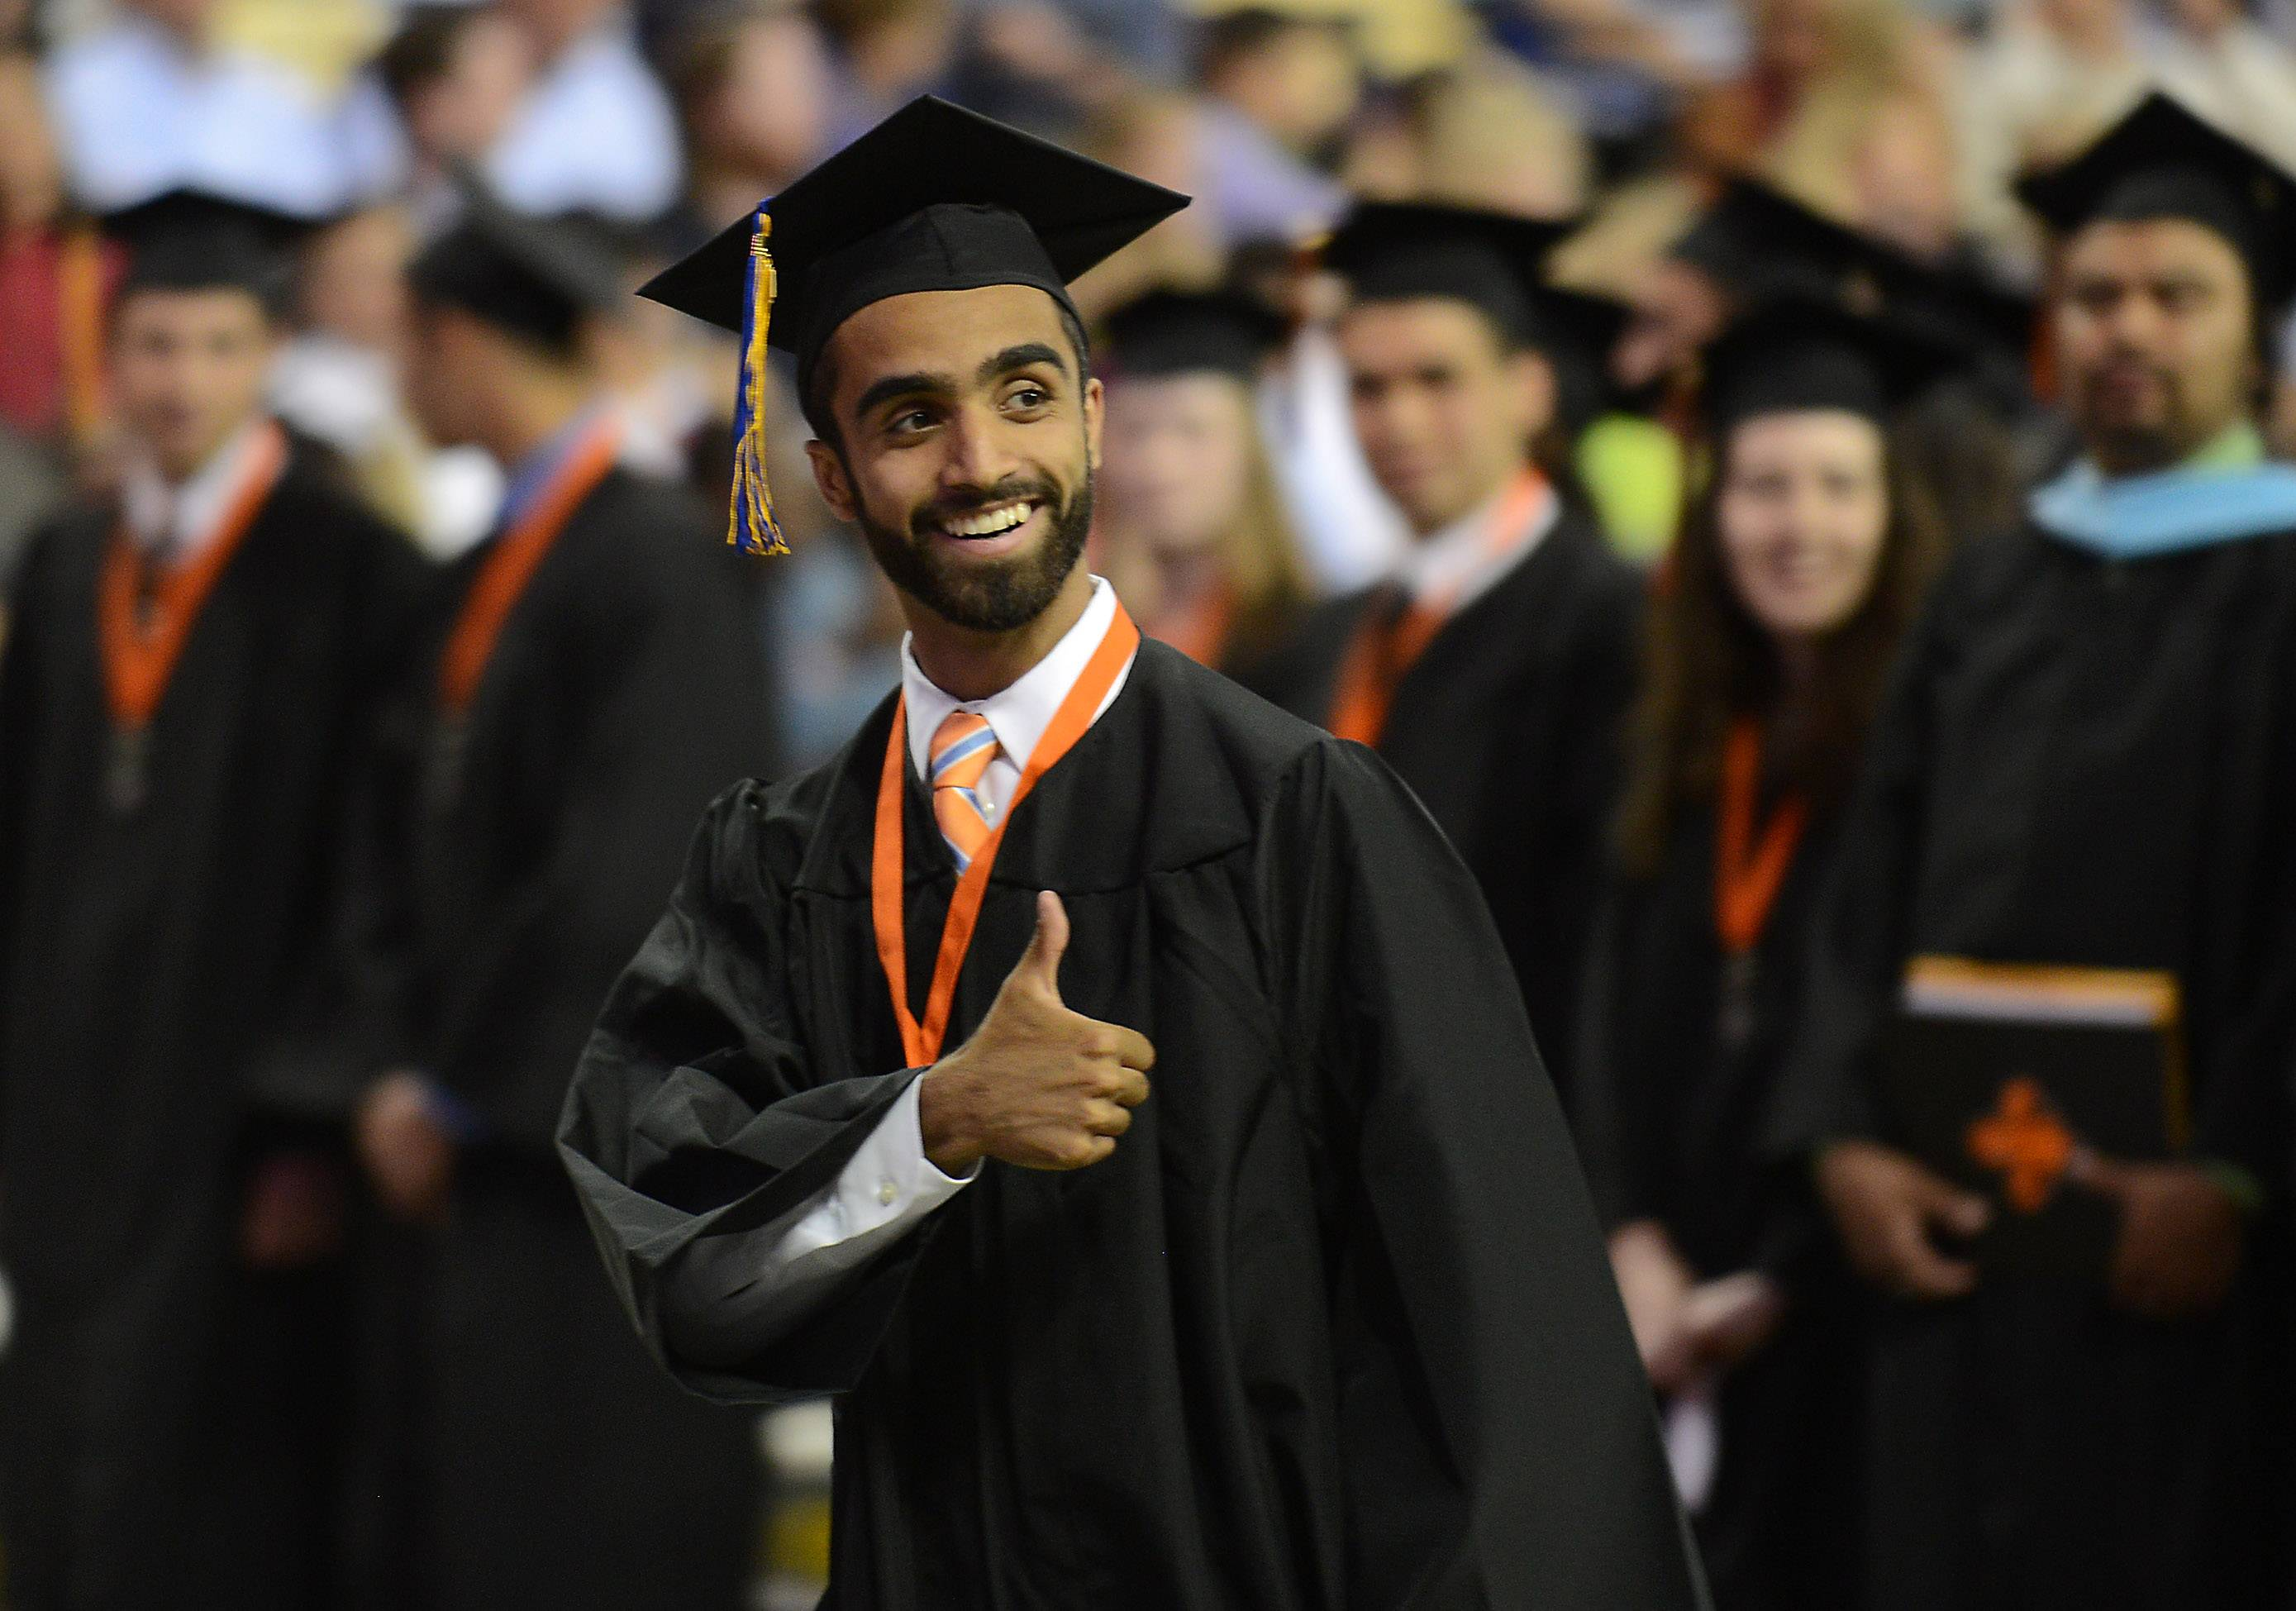 Farooq Chaudhry gives a thumbs up to people in the crowd as he takes his seat on the stage before St. Charles East's graduation ceremony at the Sears Centre in Hoffman Estates Sunday. He was one of the student speakers.